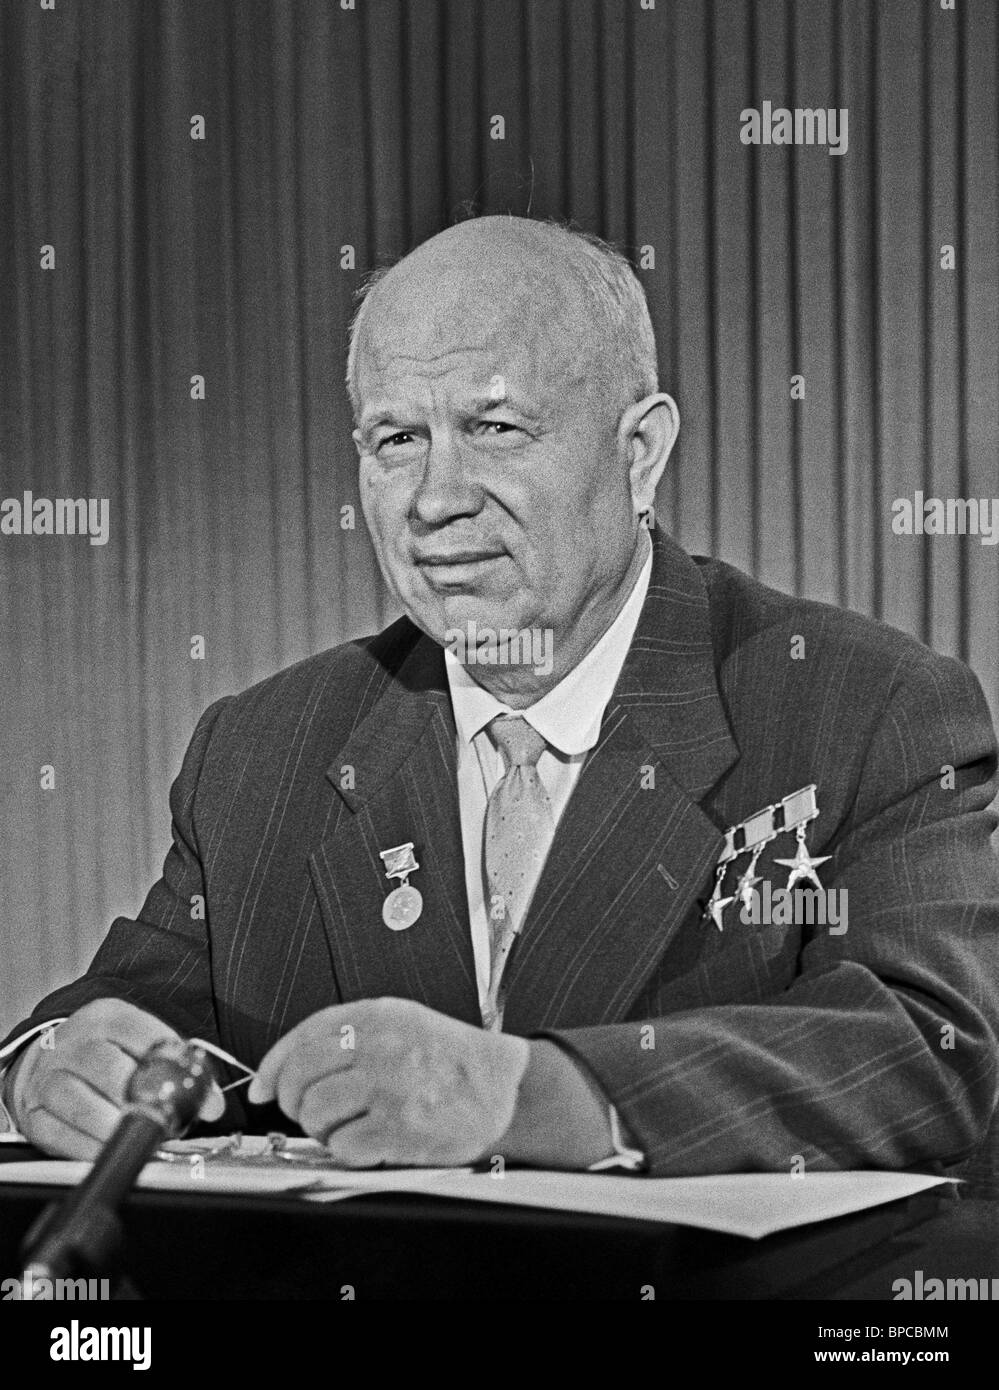 First Secretary of Central Committee of CPSU Nikita Khrushchev, 1962 Stock Photo